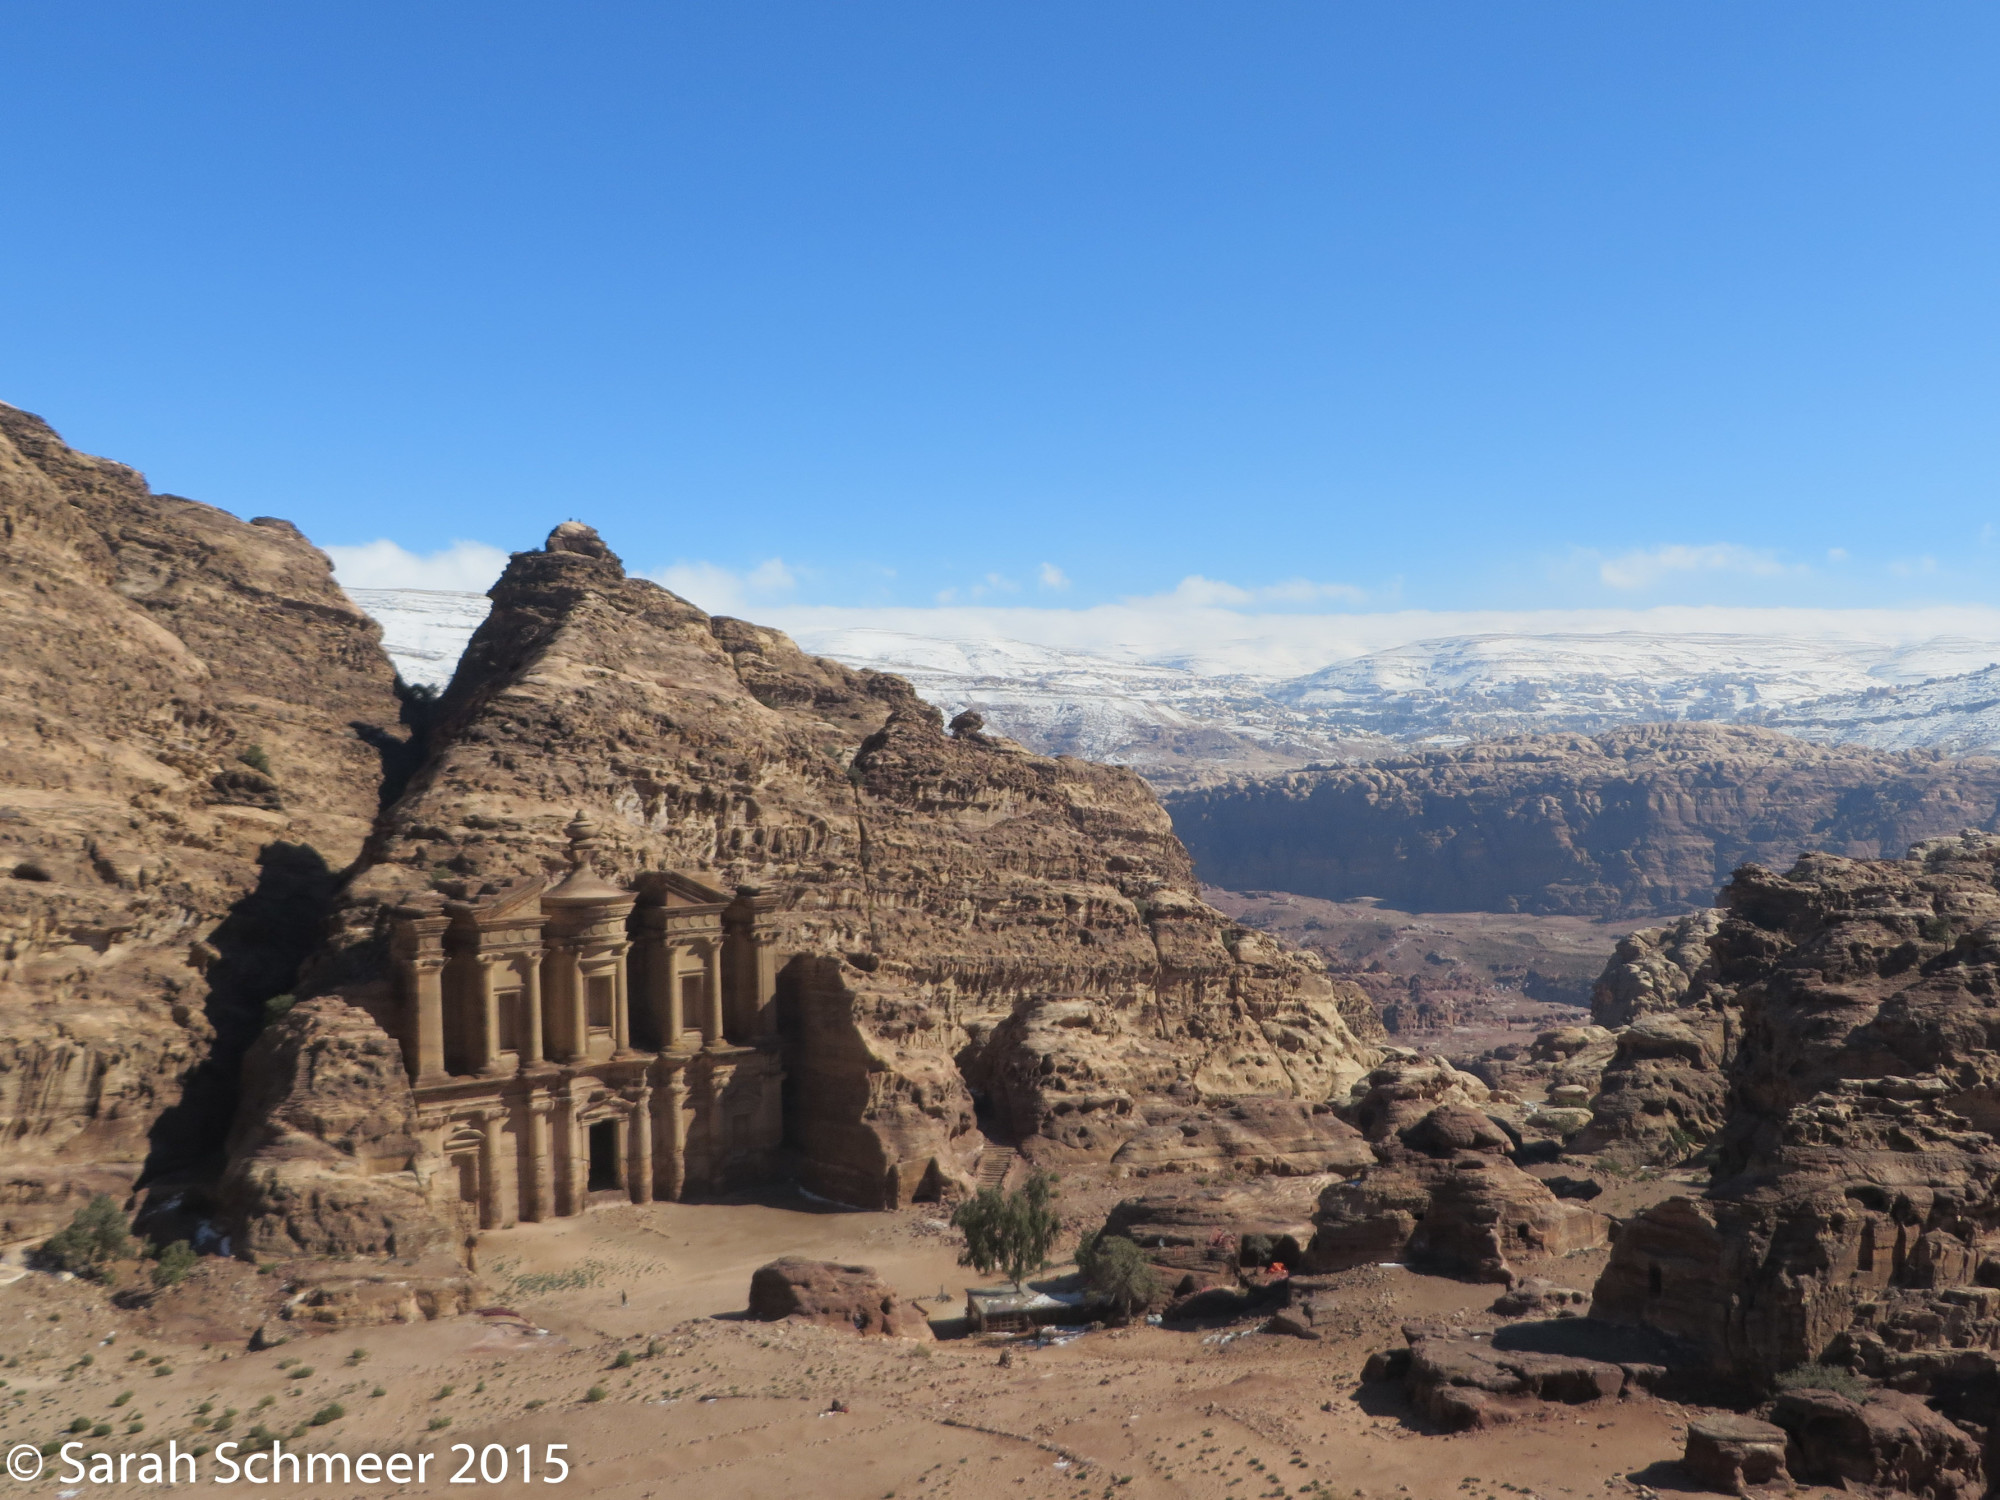 The Monastery at Petra, one of the more remarkable sites you have to hike to.